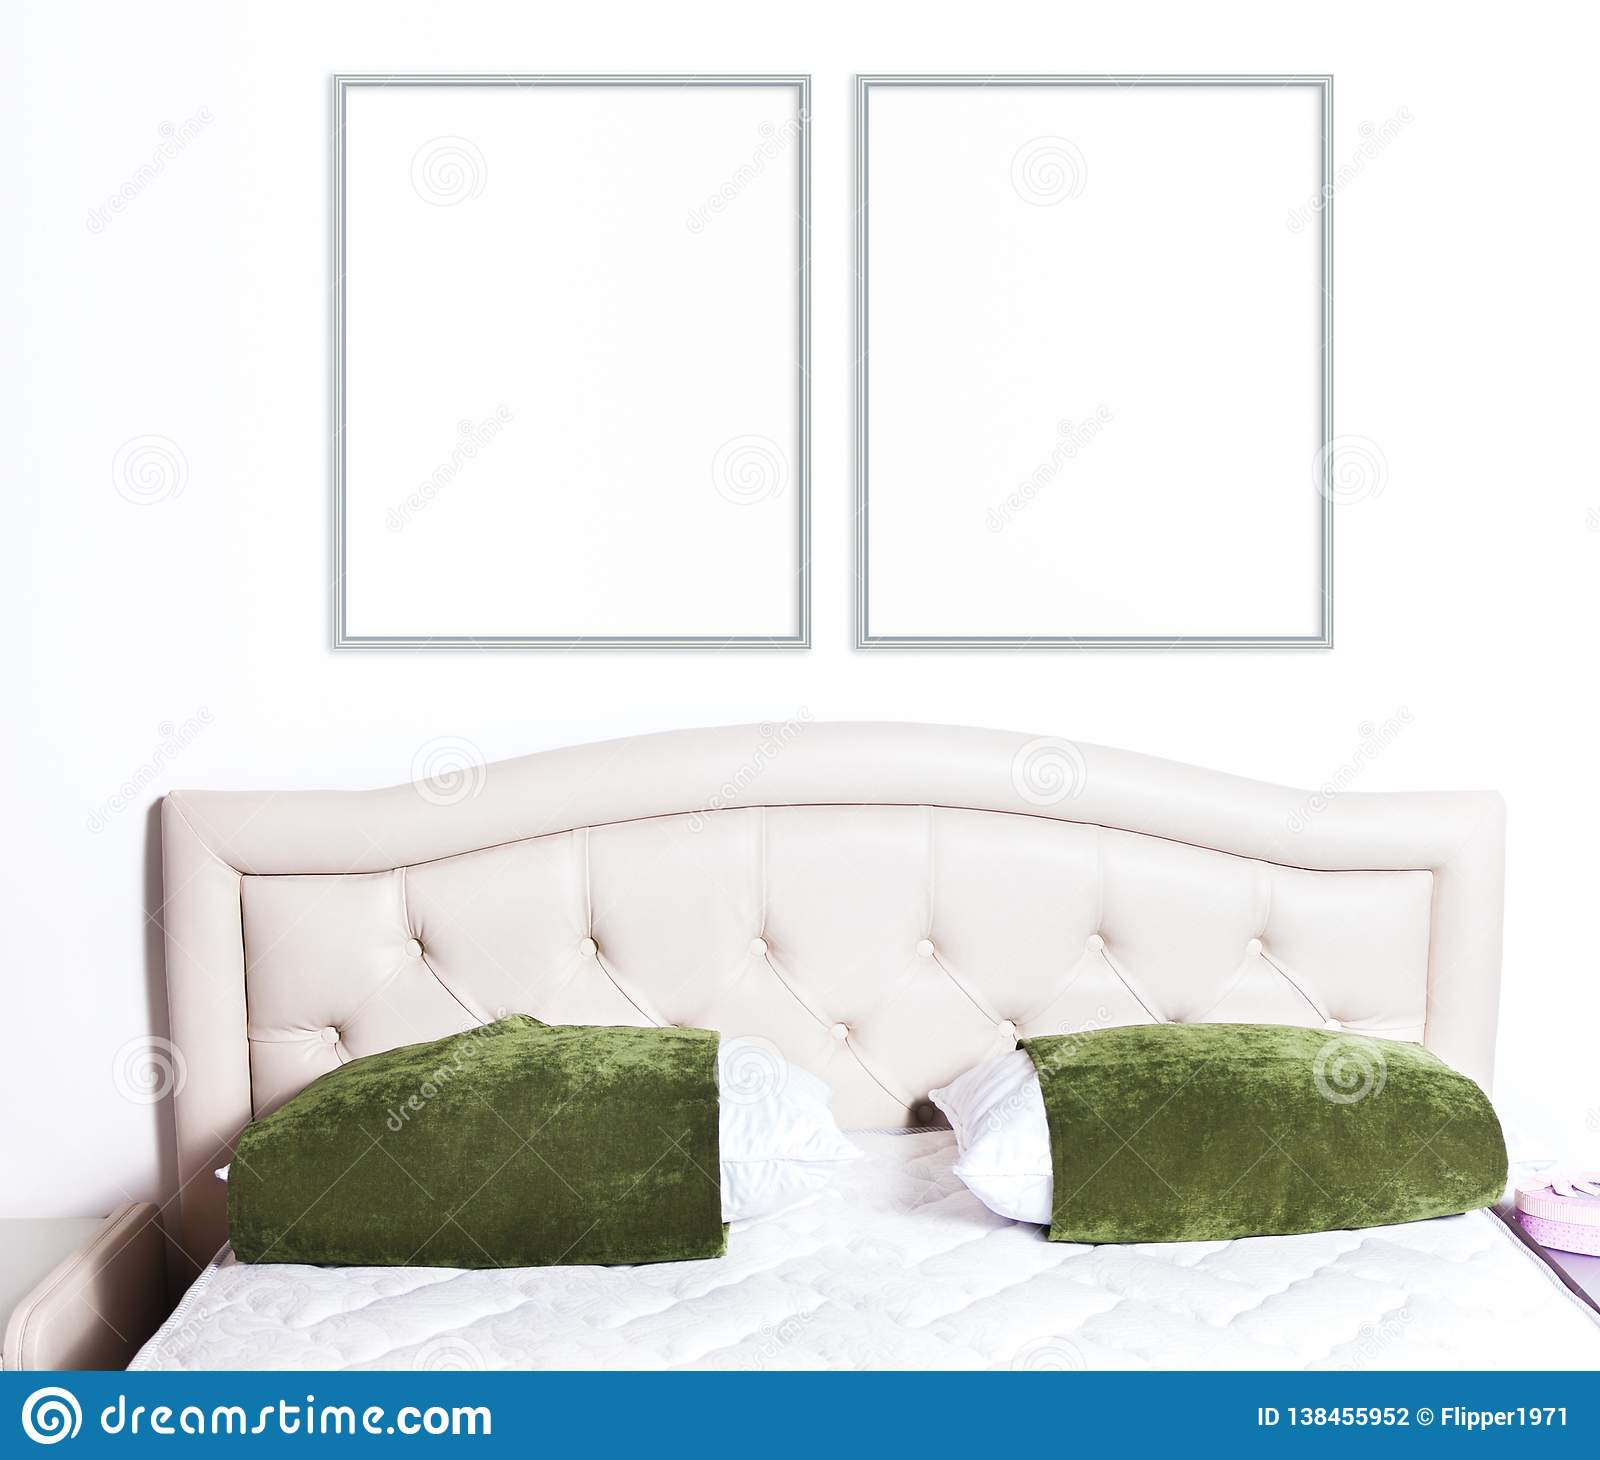 8x10 16x20 Two Thin Frames Mockup Stock Photo Image Of Frame Thin 138455952